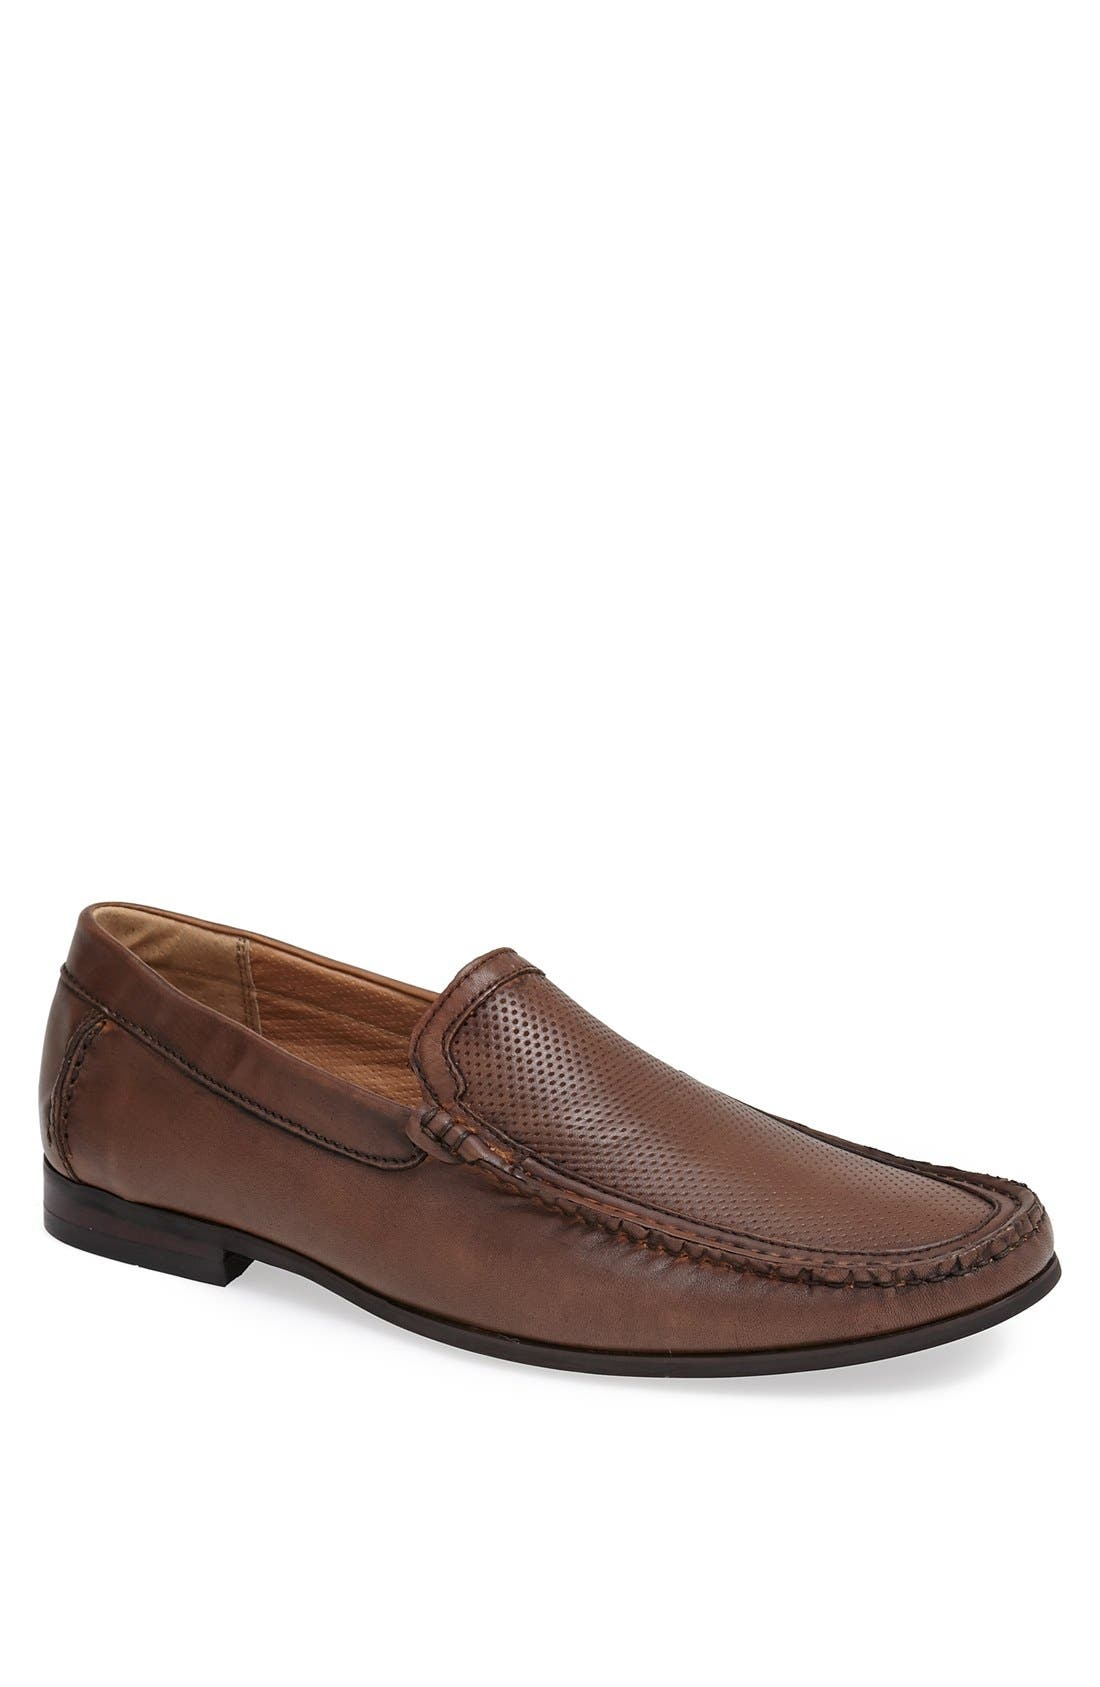 Alternate Image 1 Selected - Vince Camuto 'Cozzo' Slip-On (Men)